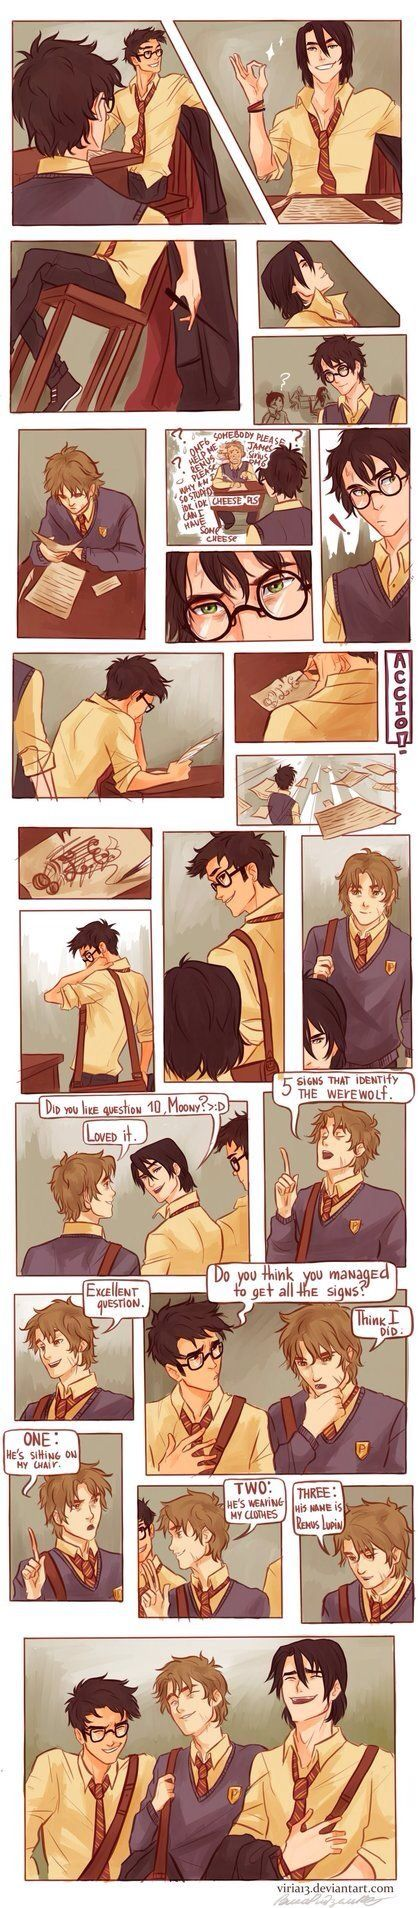 Marauders Mooney, Wormtail, Padfoot, and Prongs, a.k.a. Remus Lupin, Sirius Black, Peter Pettigrew, and James Potter.